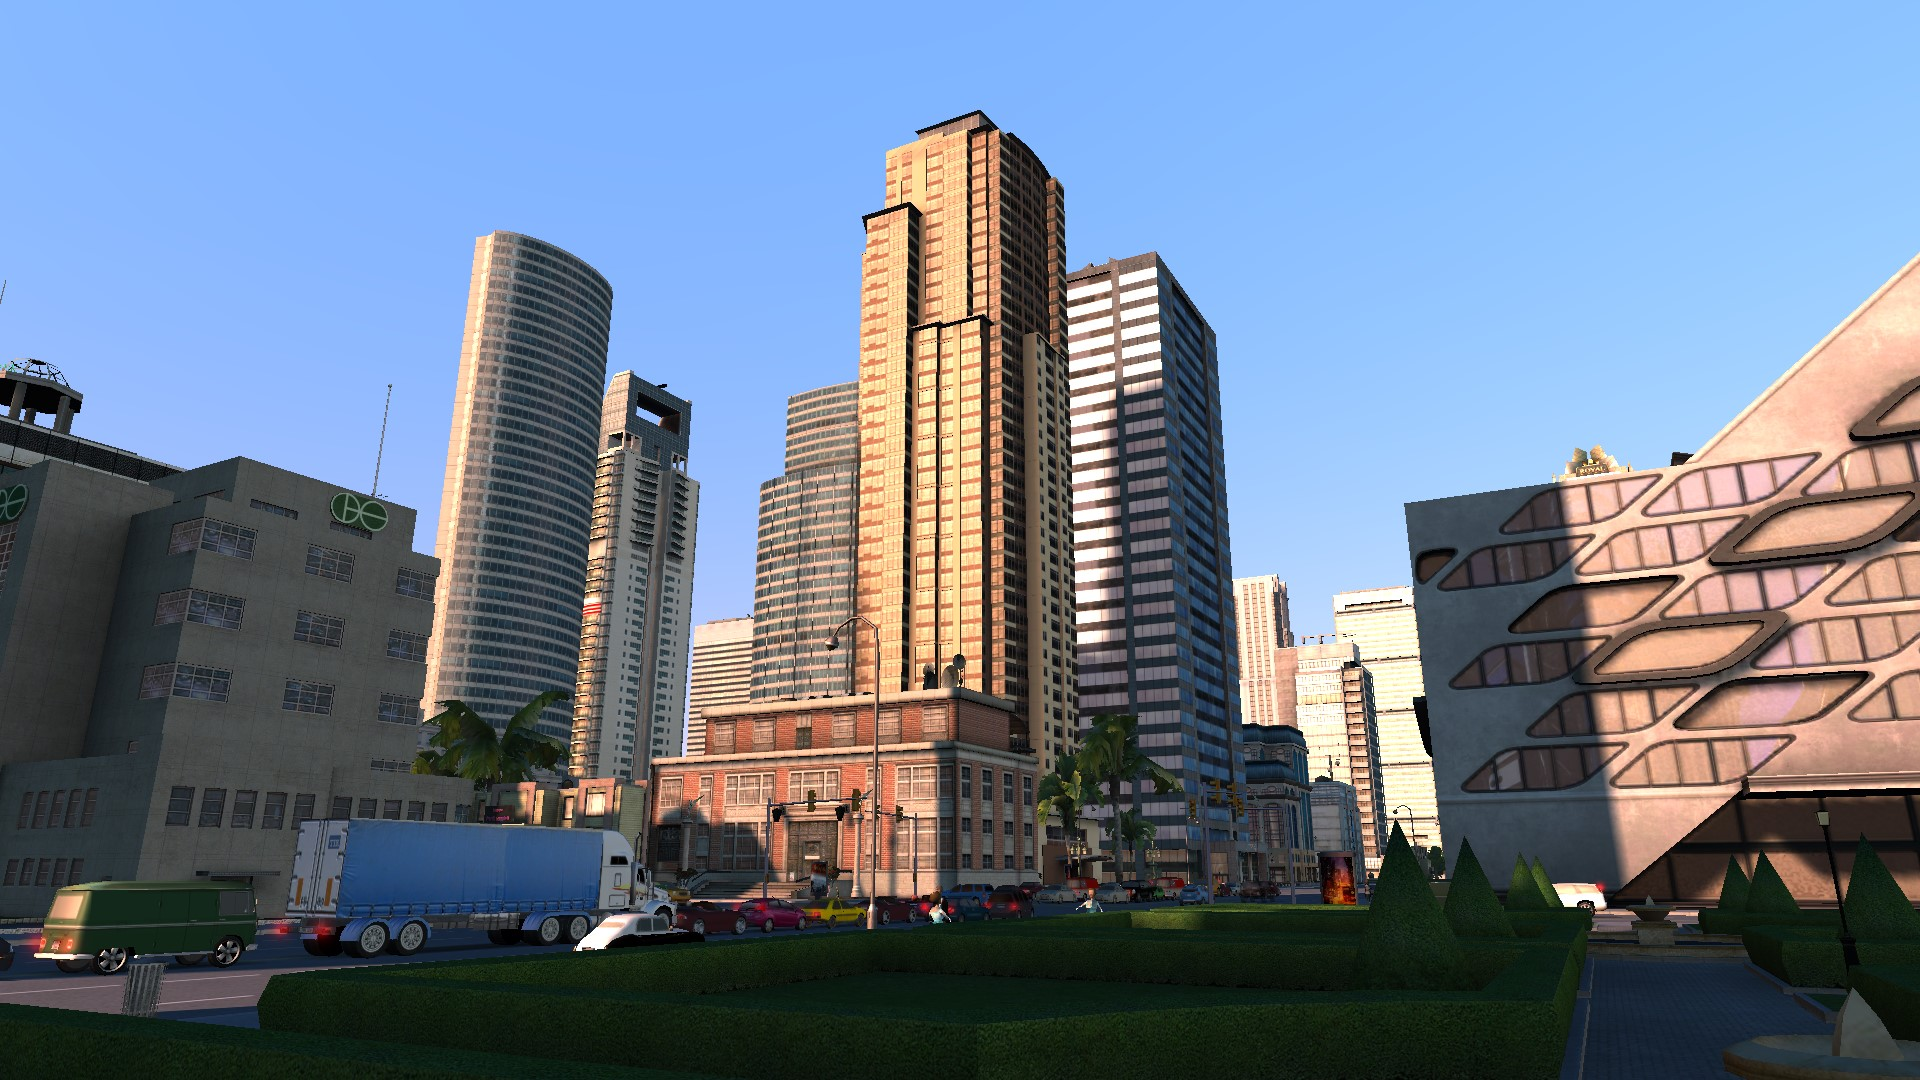 cxl_screenshot_liberty city_26.jpg